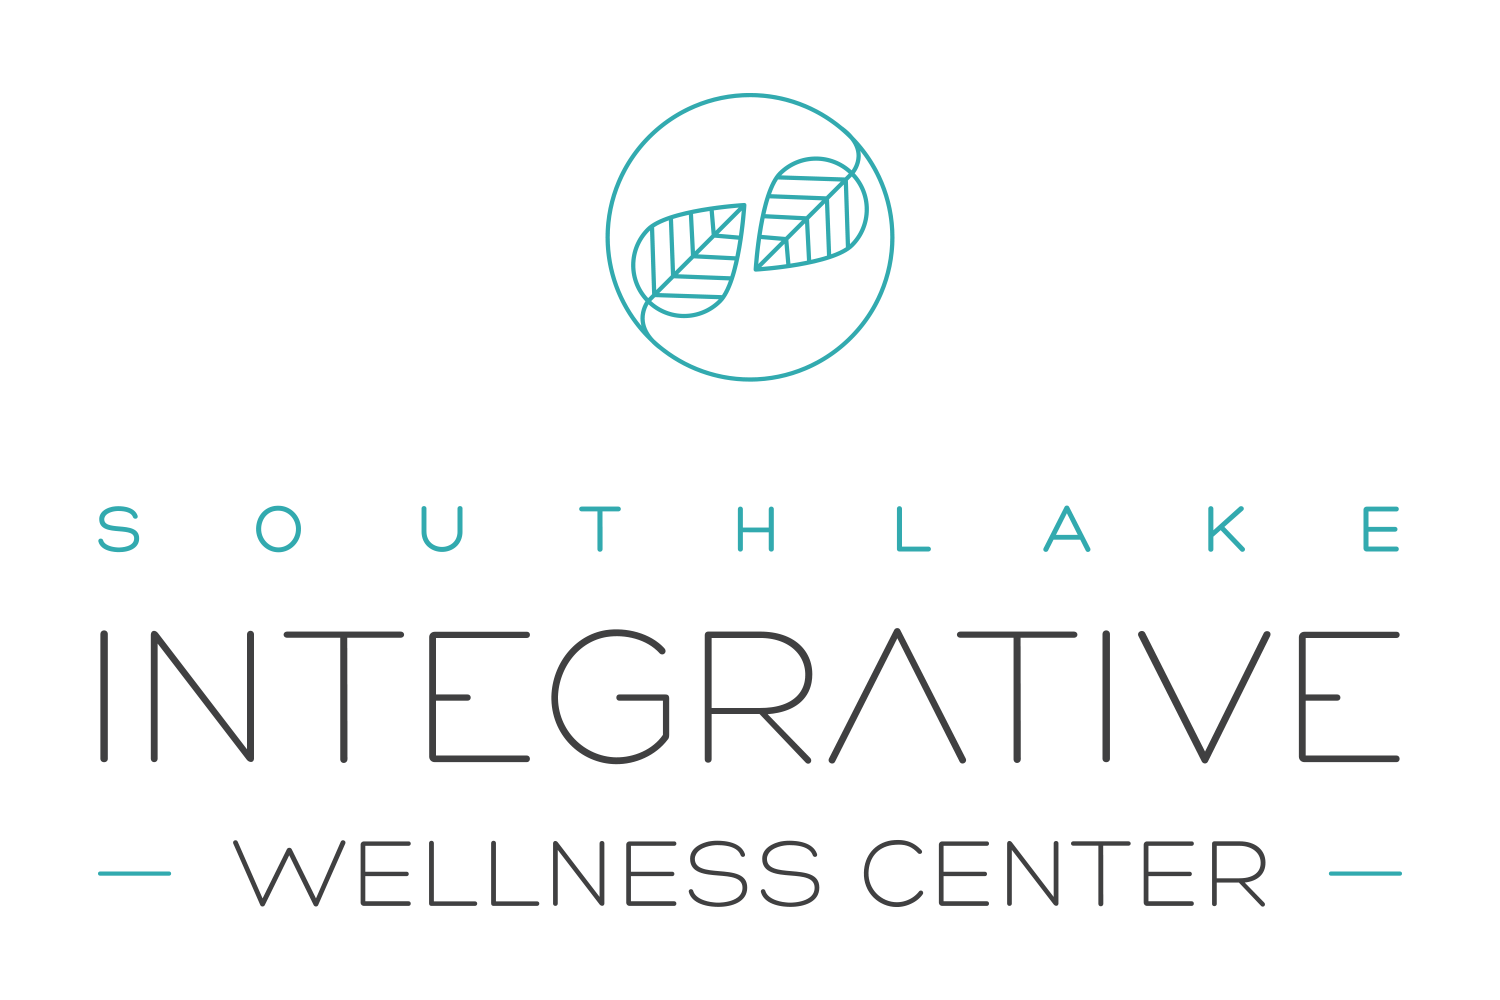 Southlake Integrative Wellness Center